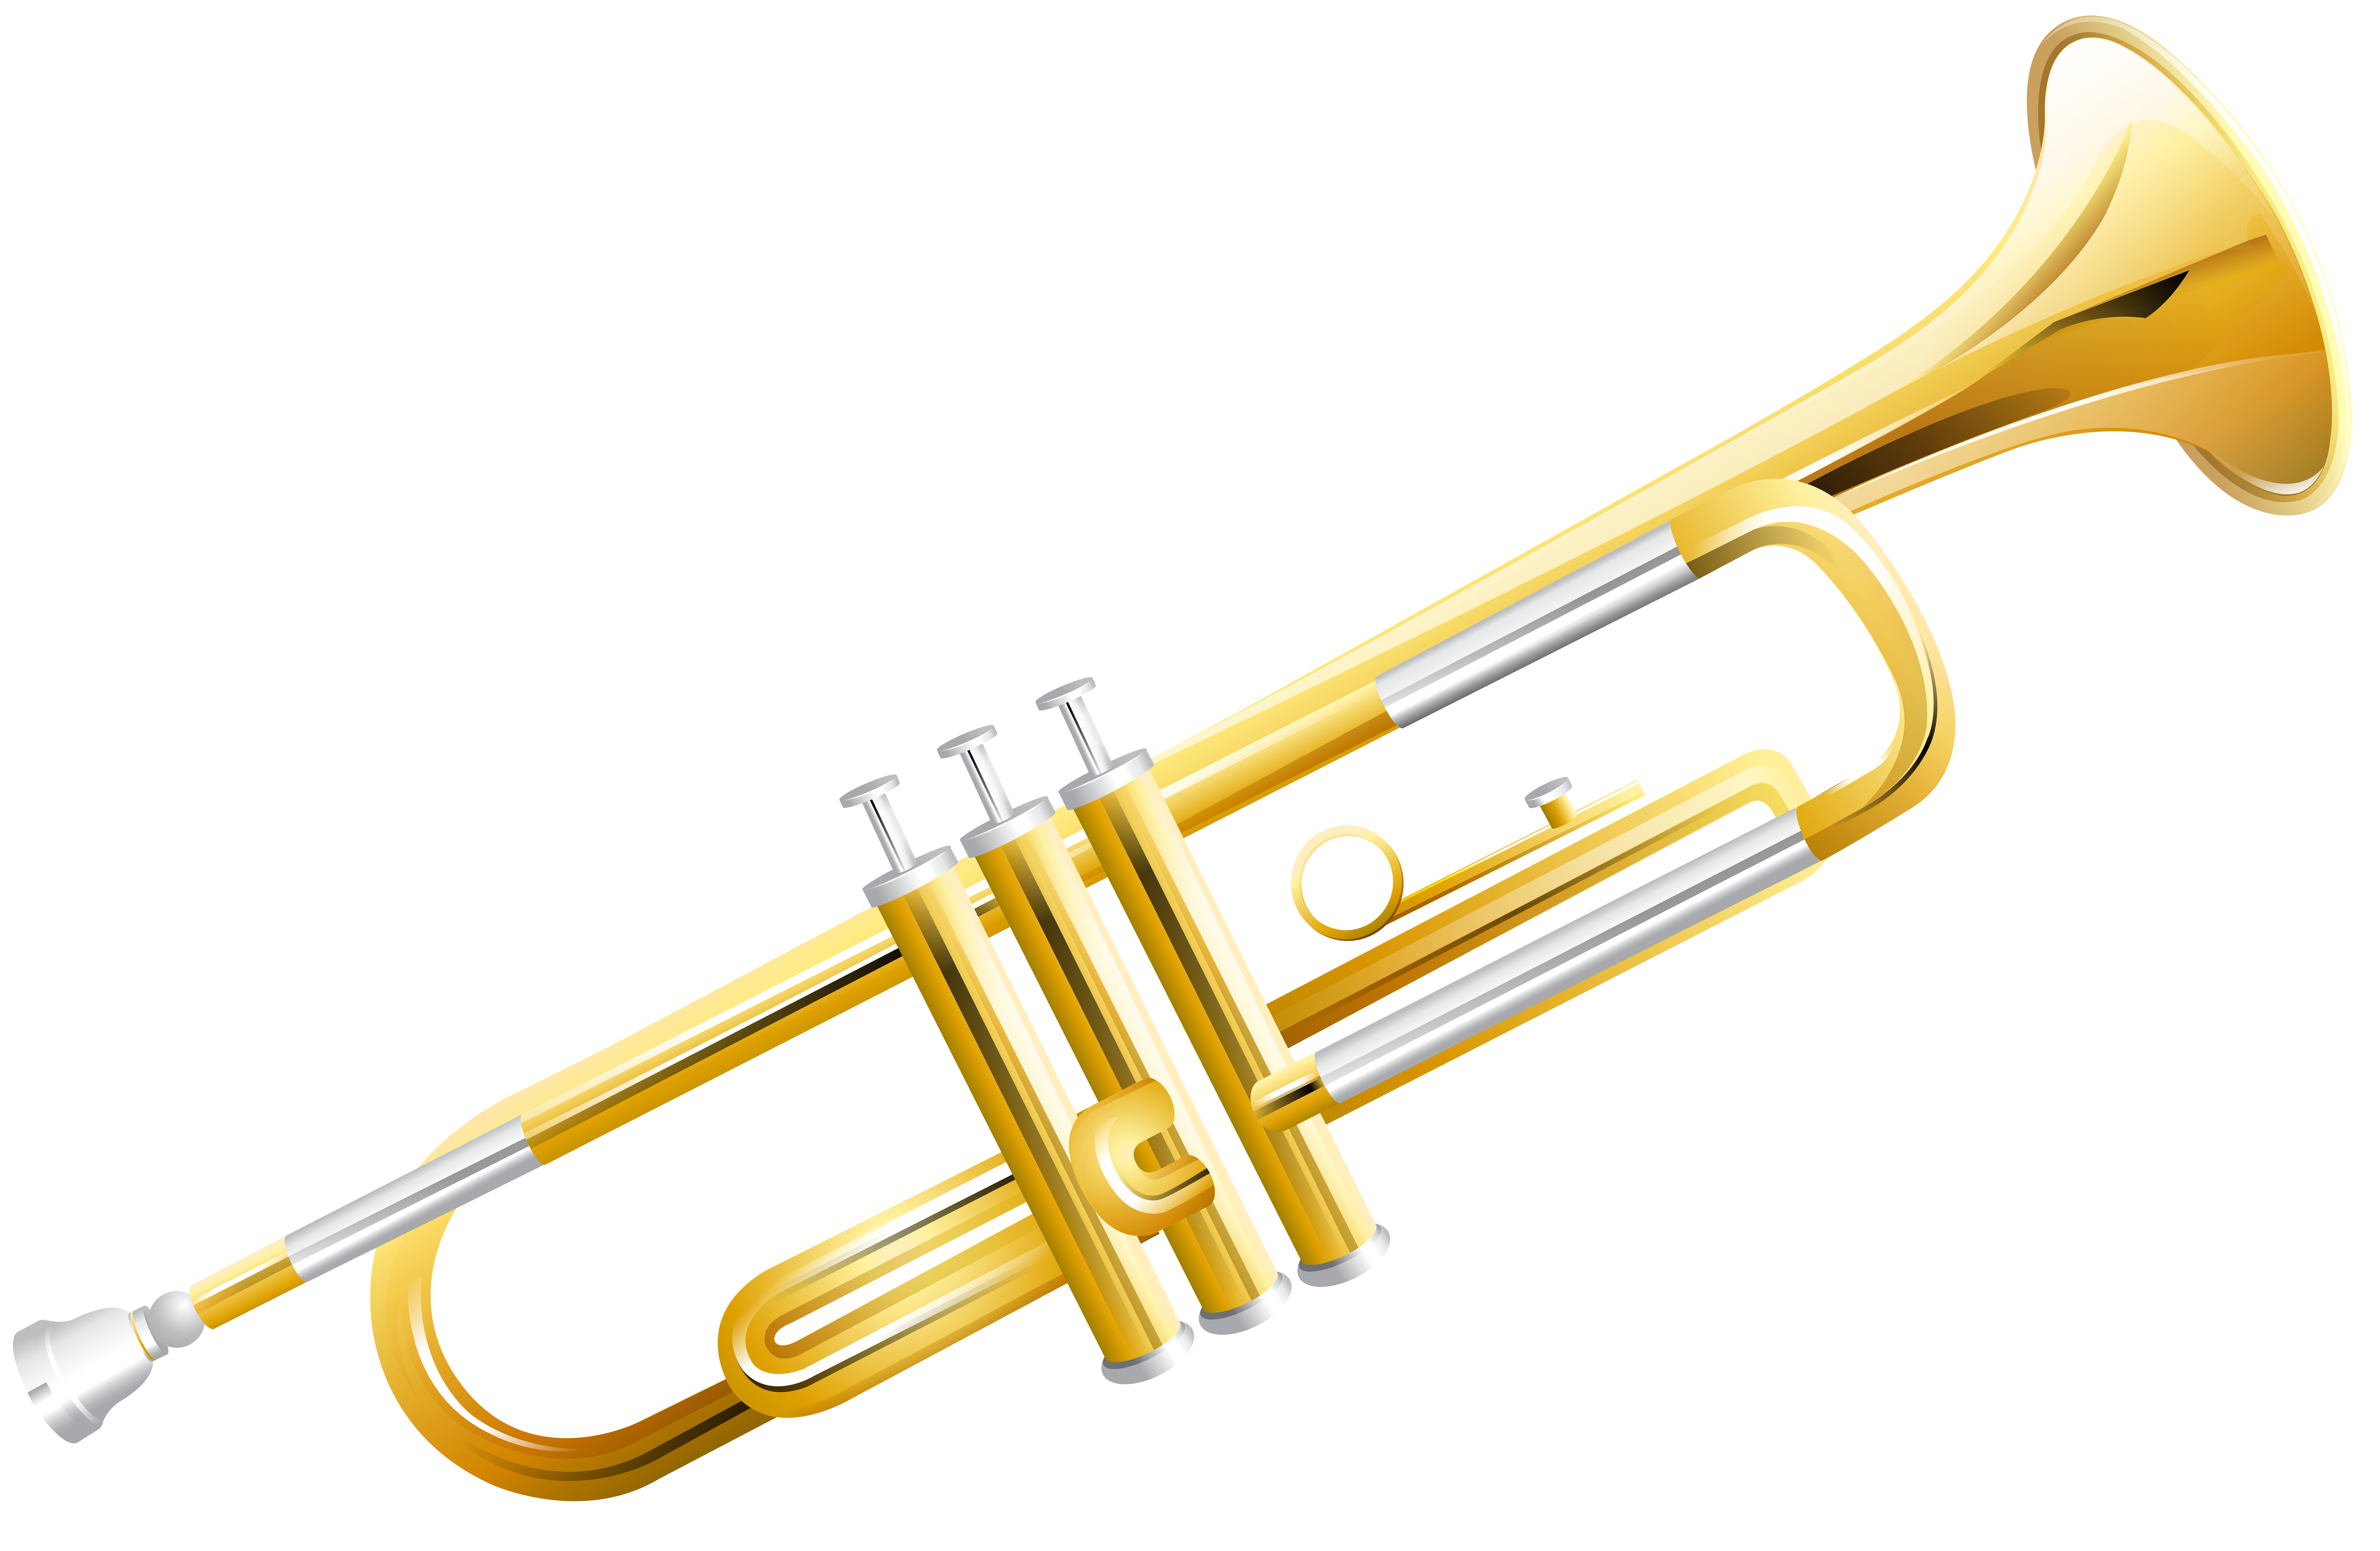 Transparent trumpet new year. Png clip art image